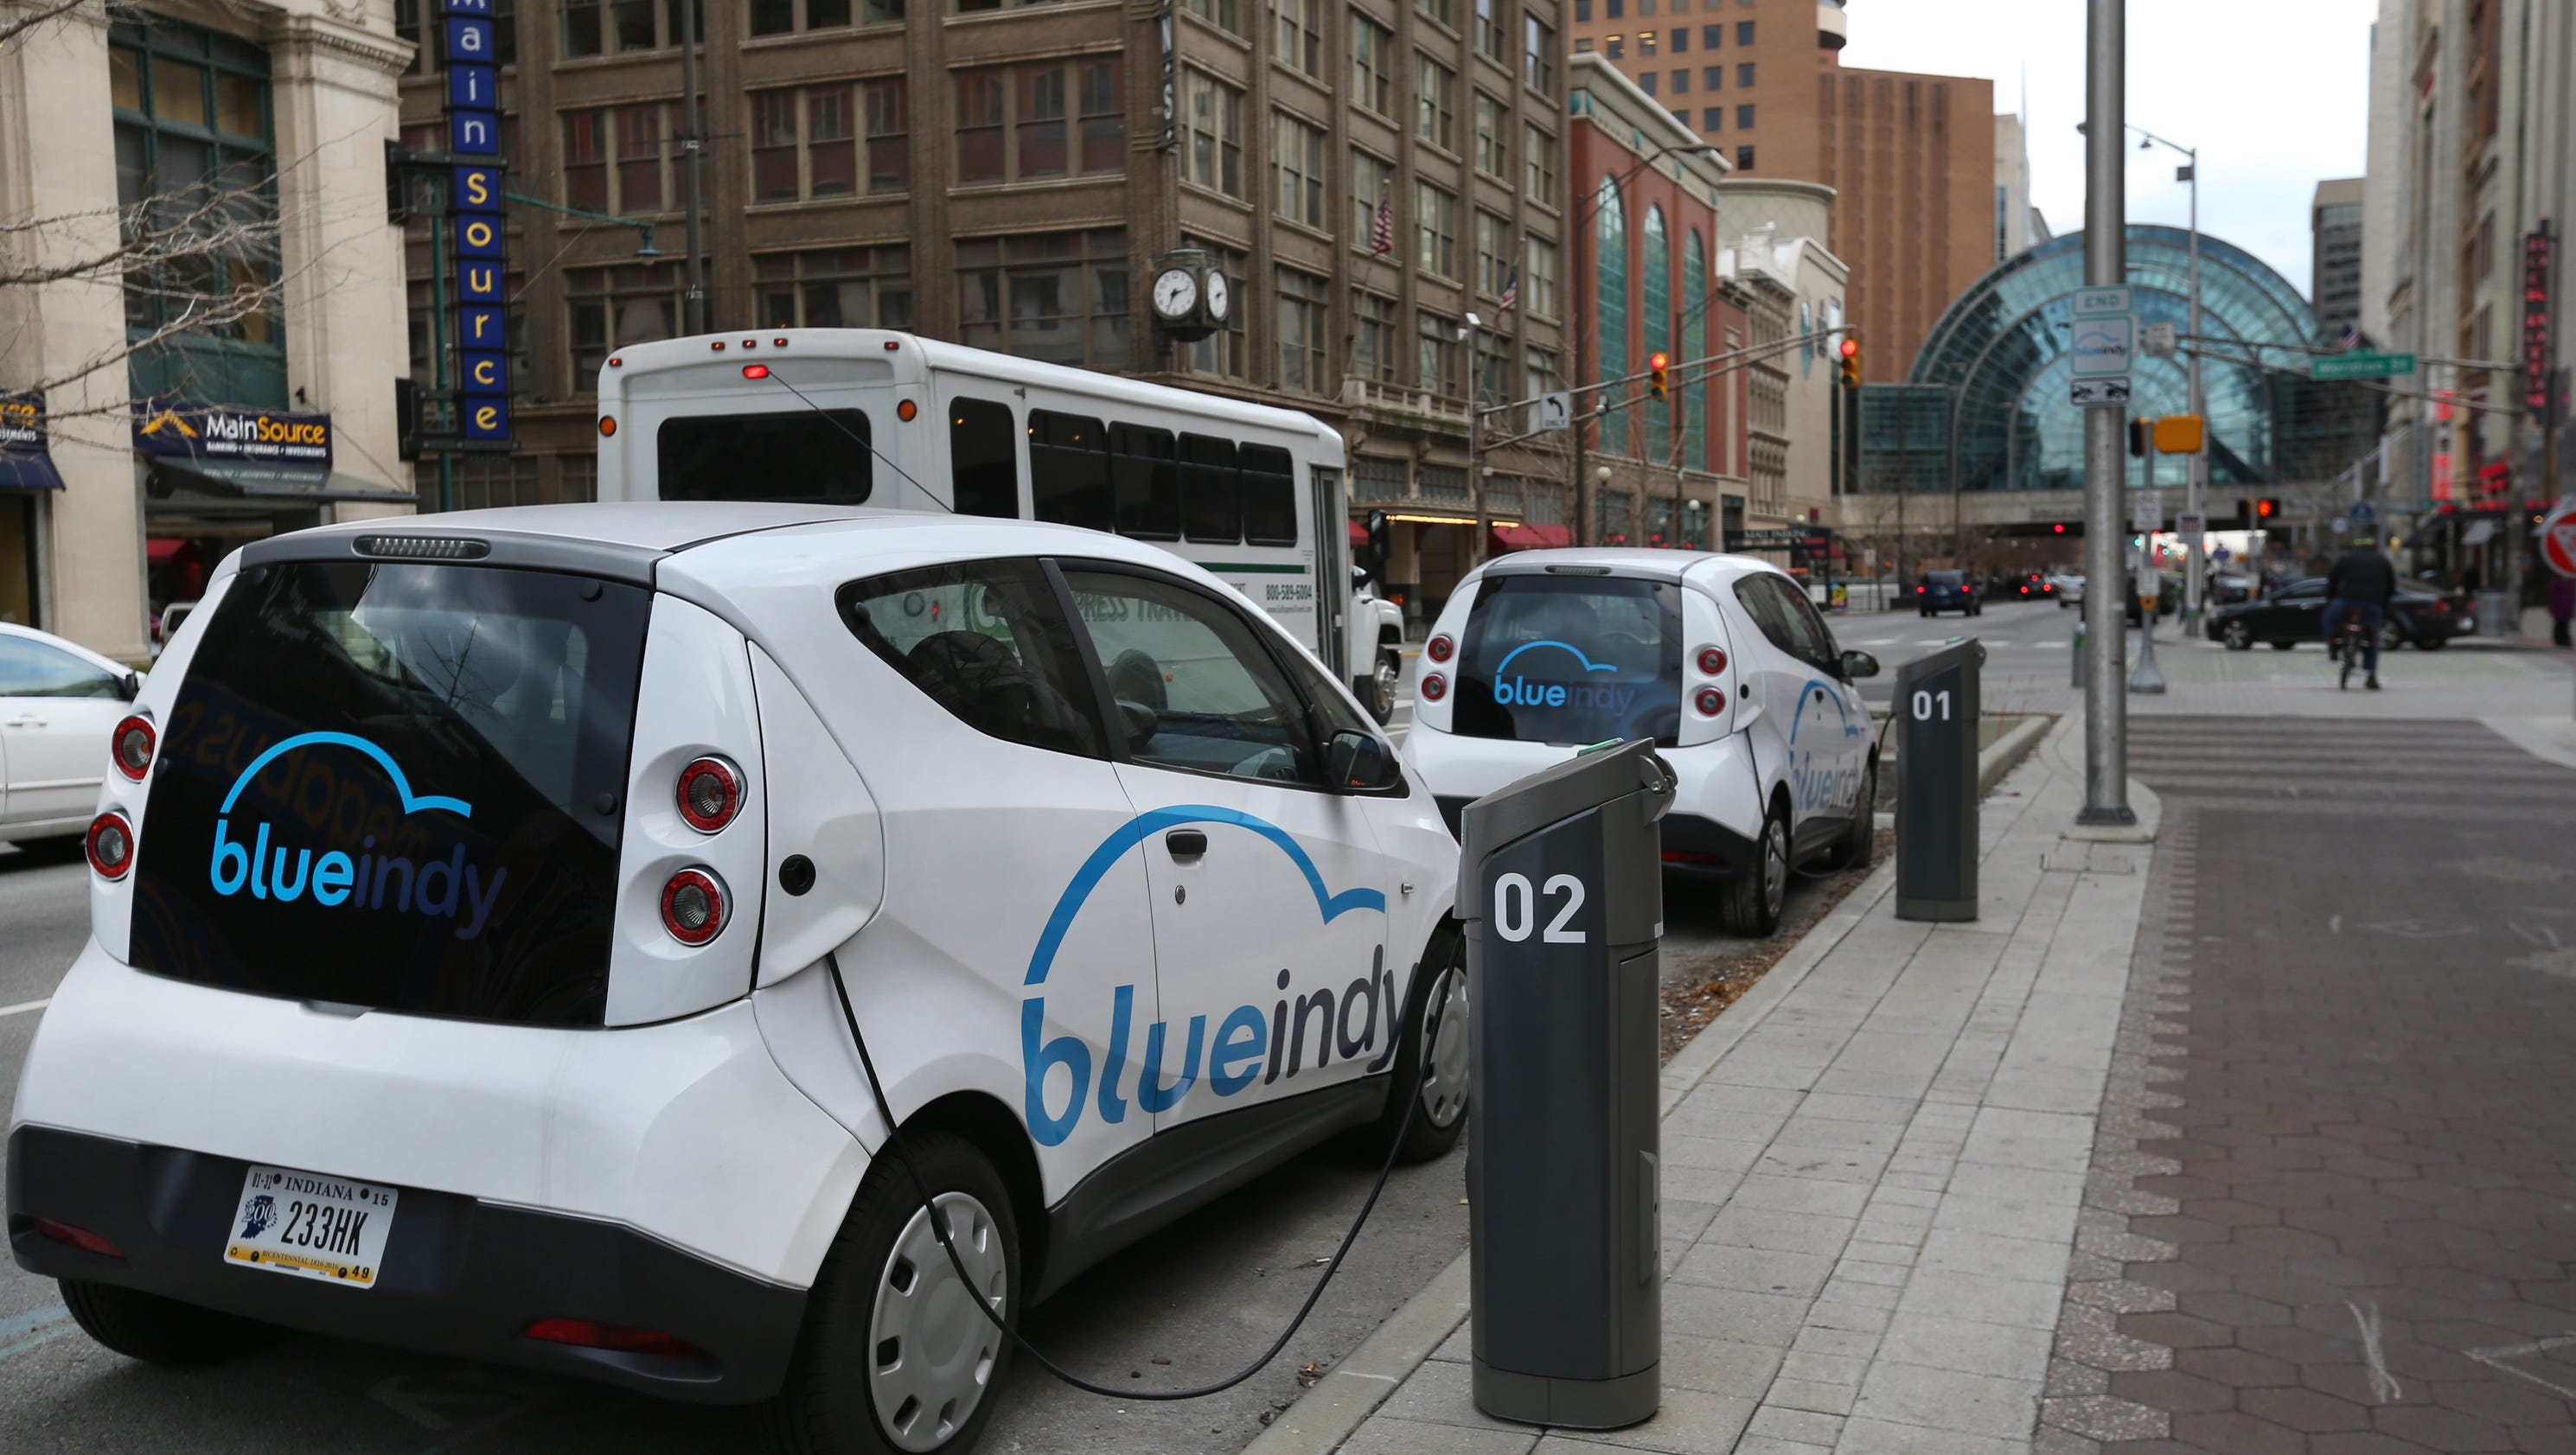 BlueIndy stations could be uprooted